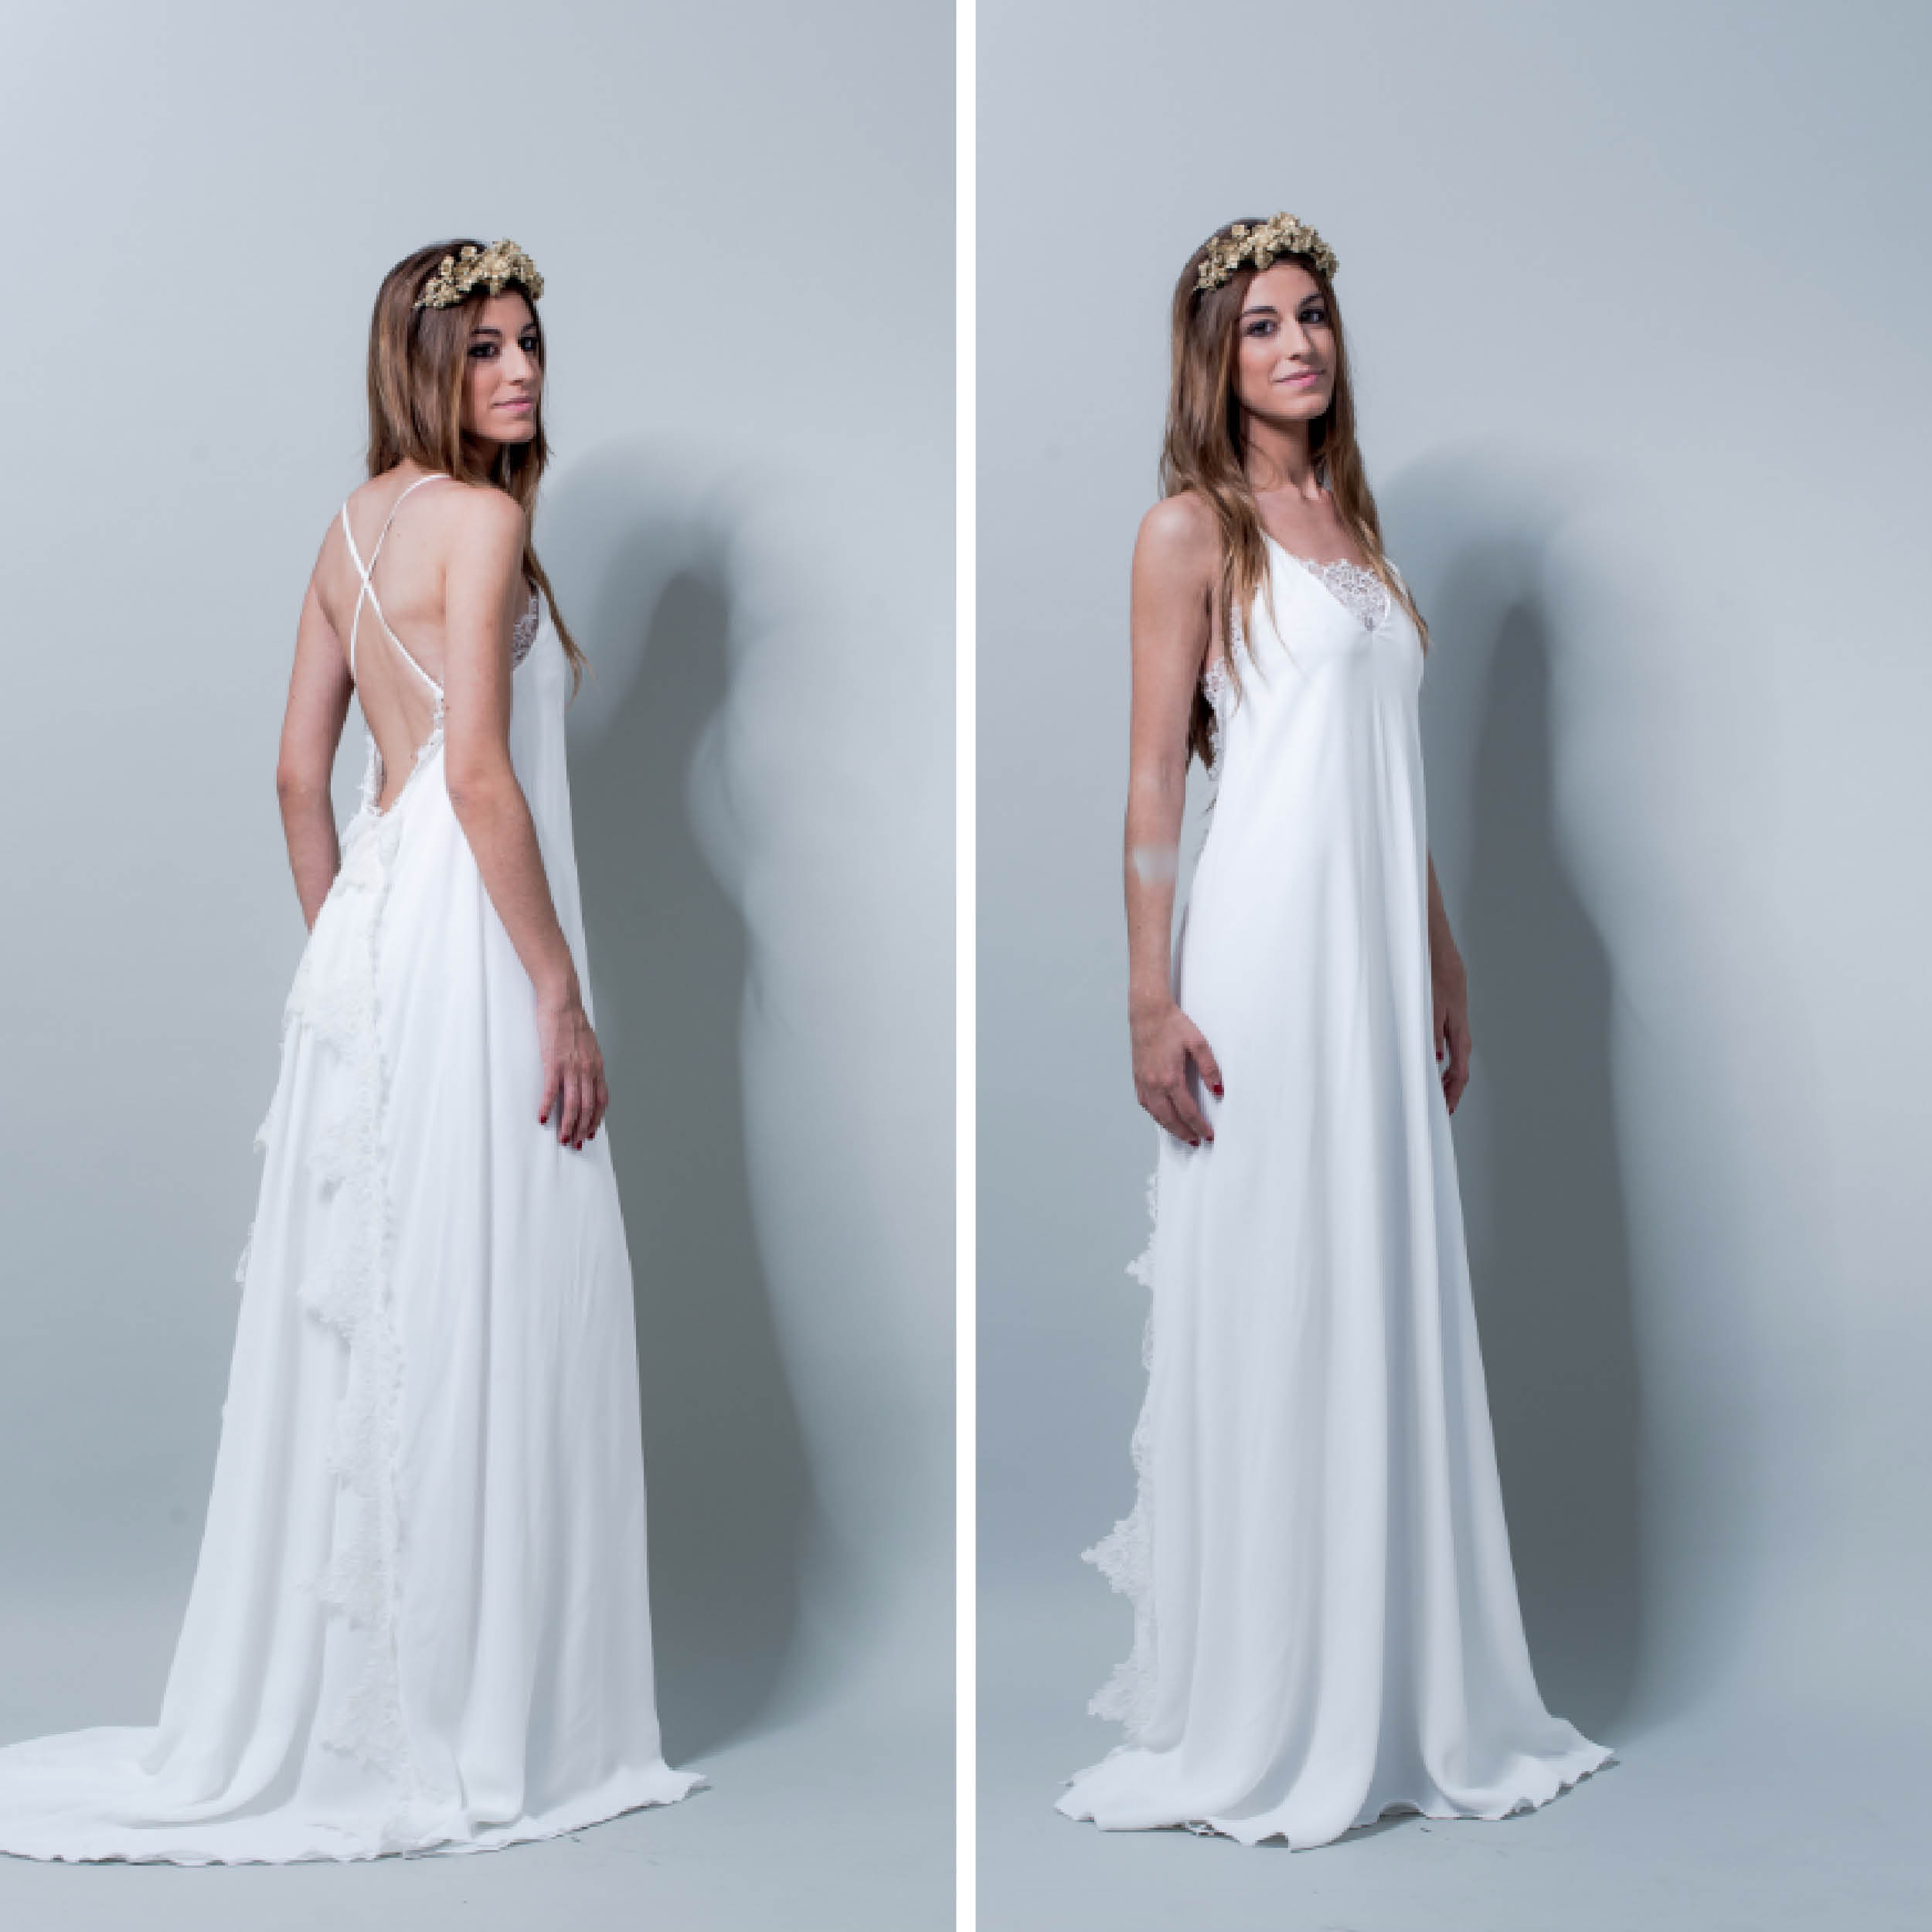 Outstanding Tienda Online De Vestidos De Novia Ideas - All Wedding ...